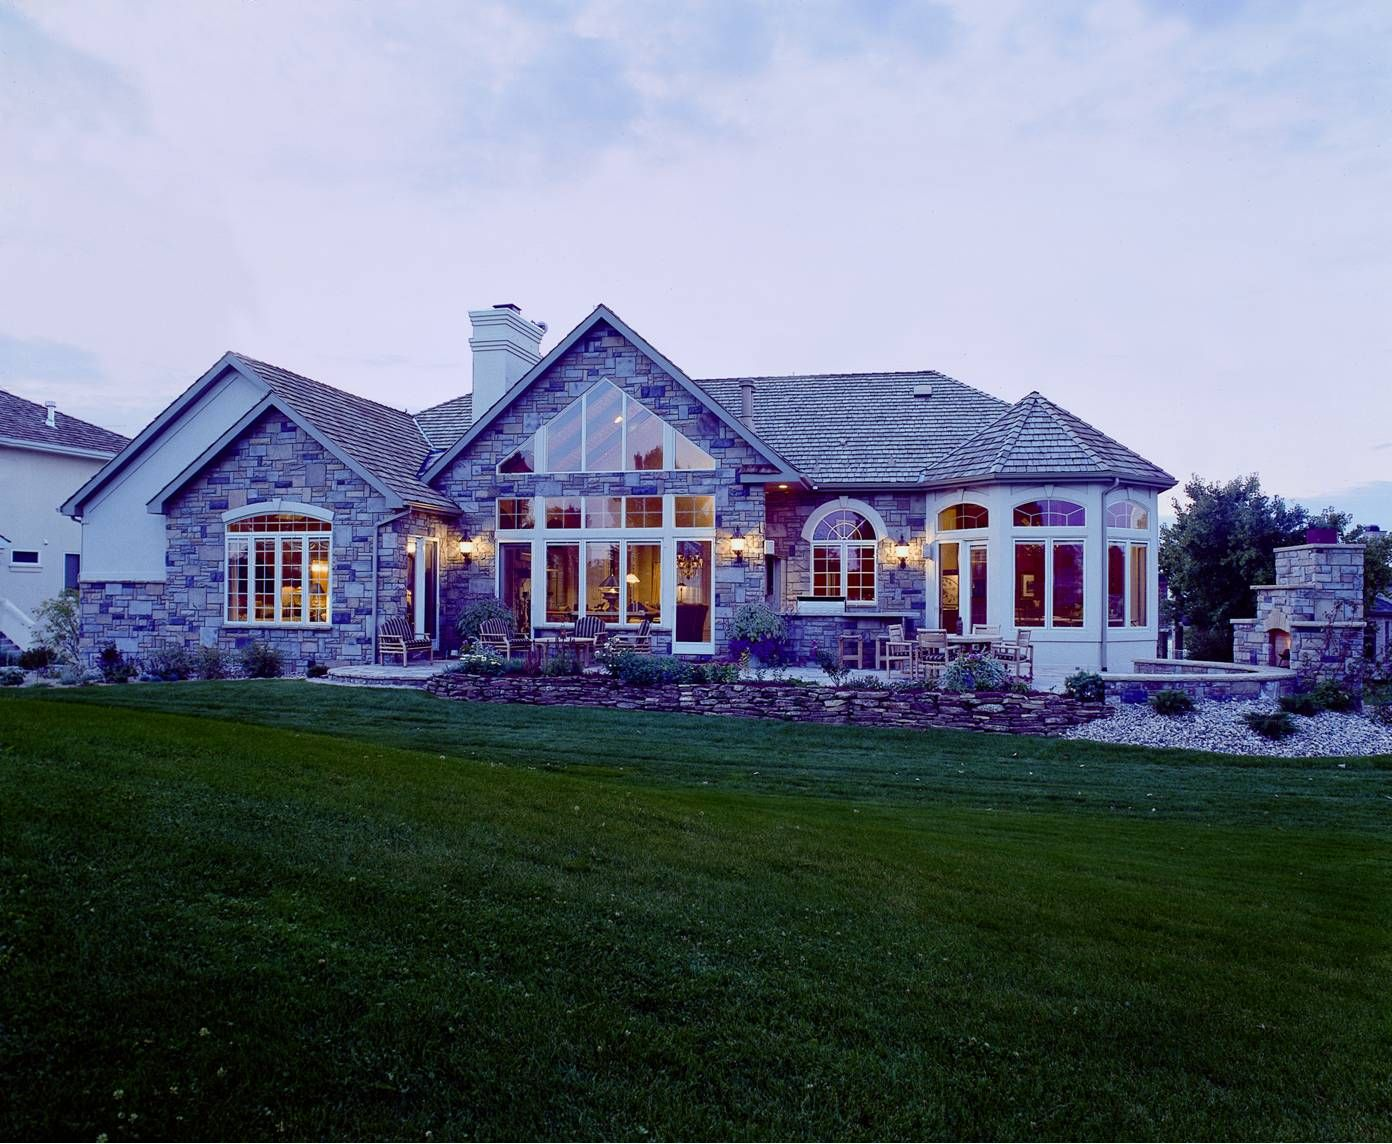 Pin By Heidi Warren On My Wishlist Ranch Style Homes Ranch House Dream House Exterior